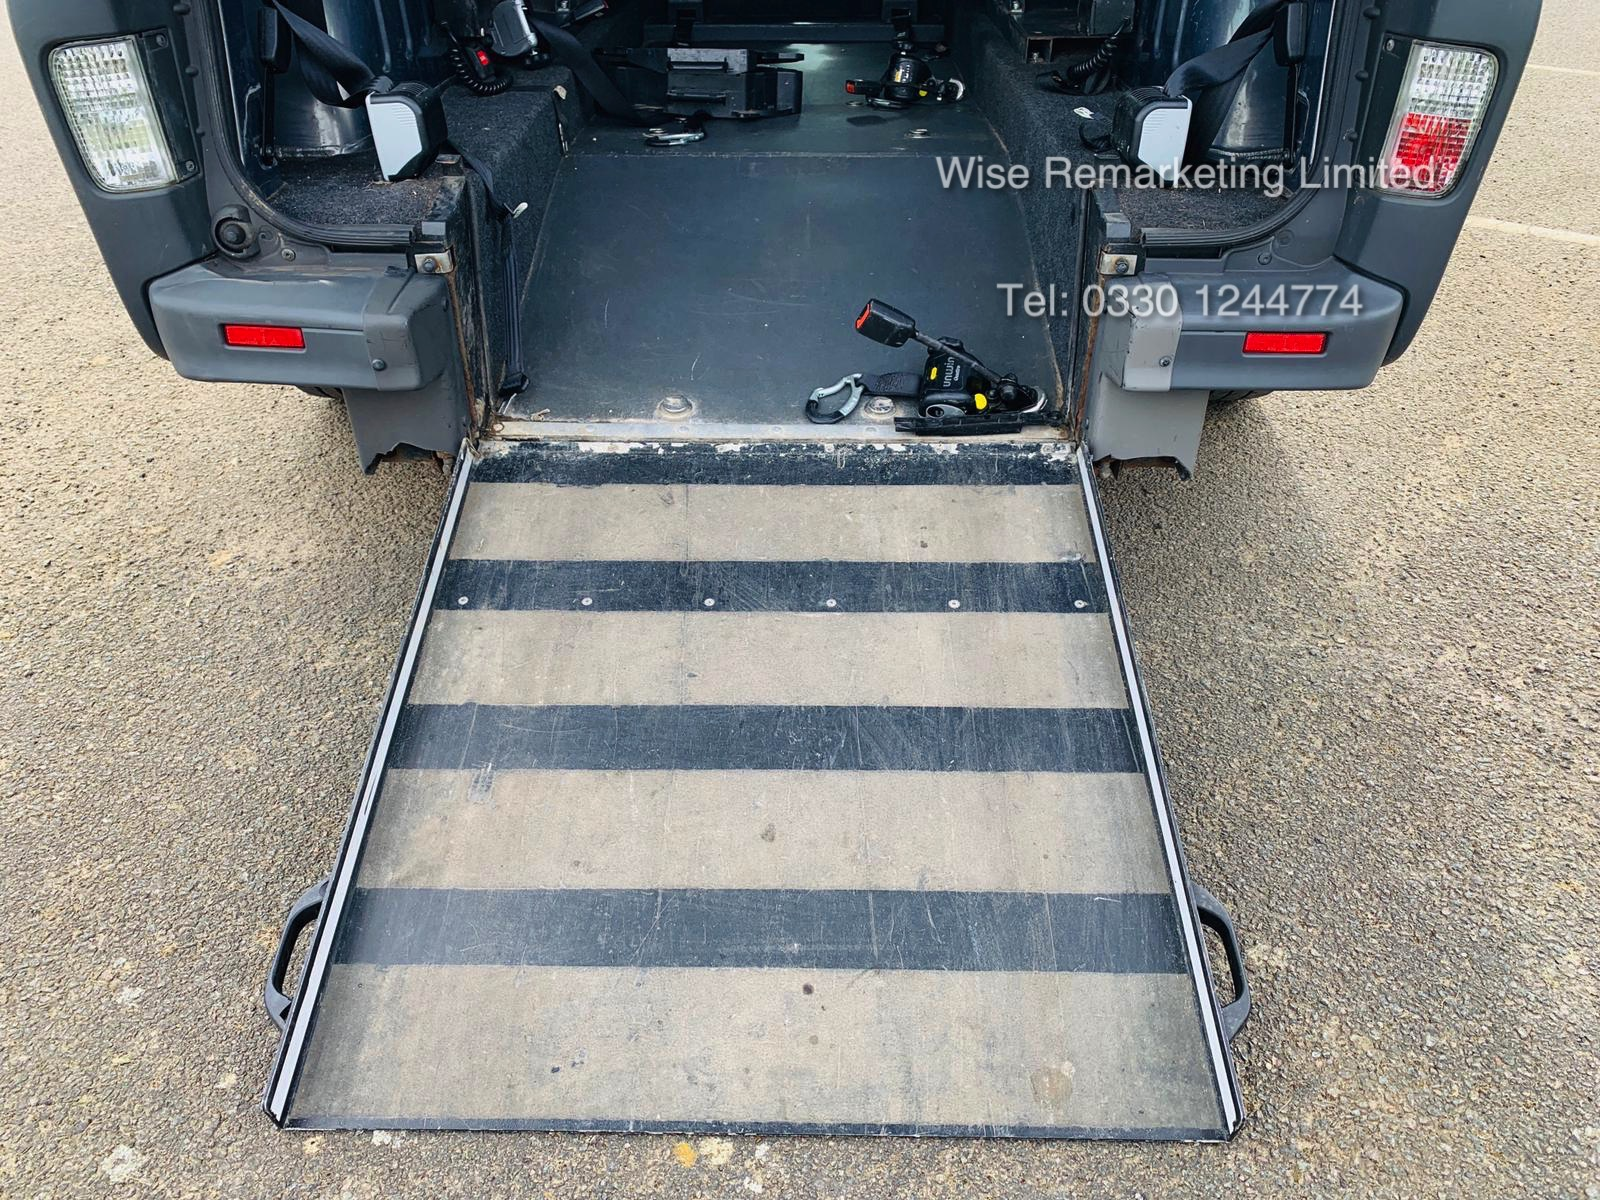 Vauxhall Vivaro 2.0 CDTI 2900 Minibus - 2014 Model - Wheel Chair Access -1 Owner From New -History - Image 14 of 21